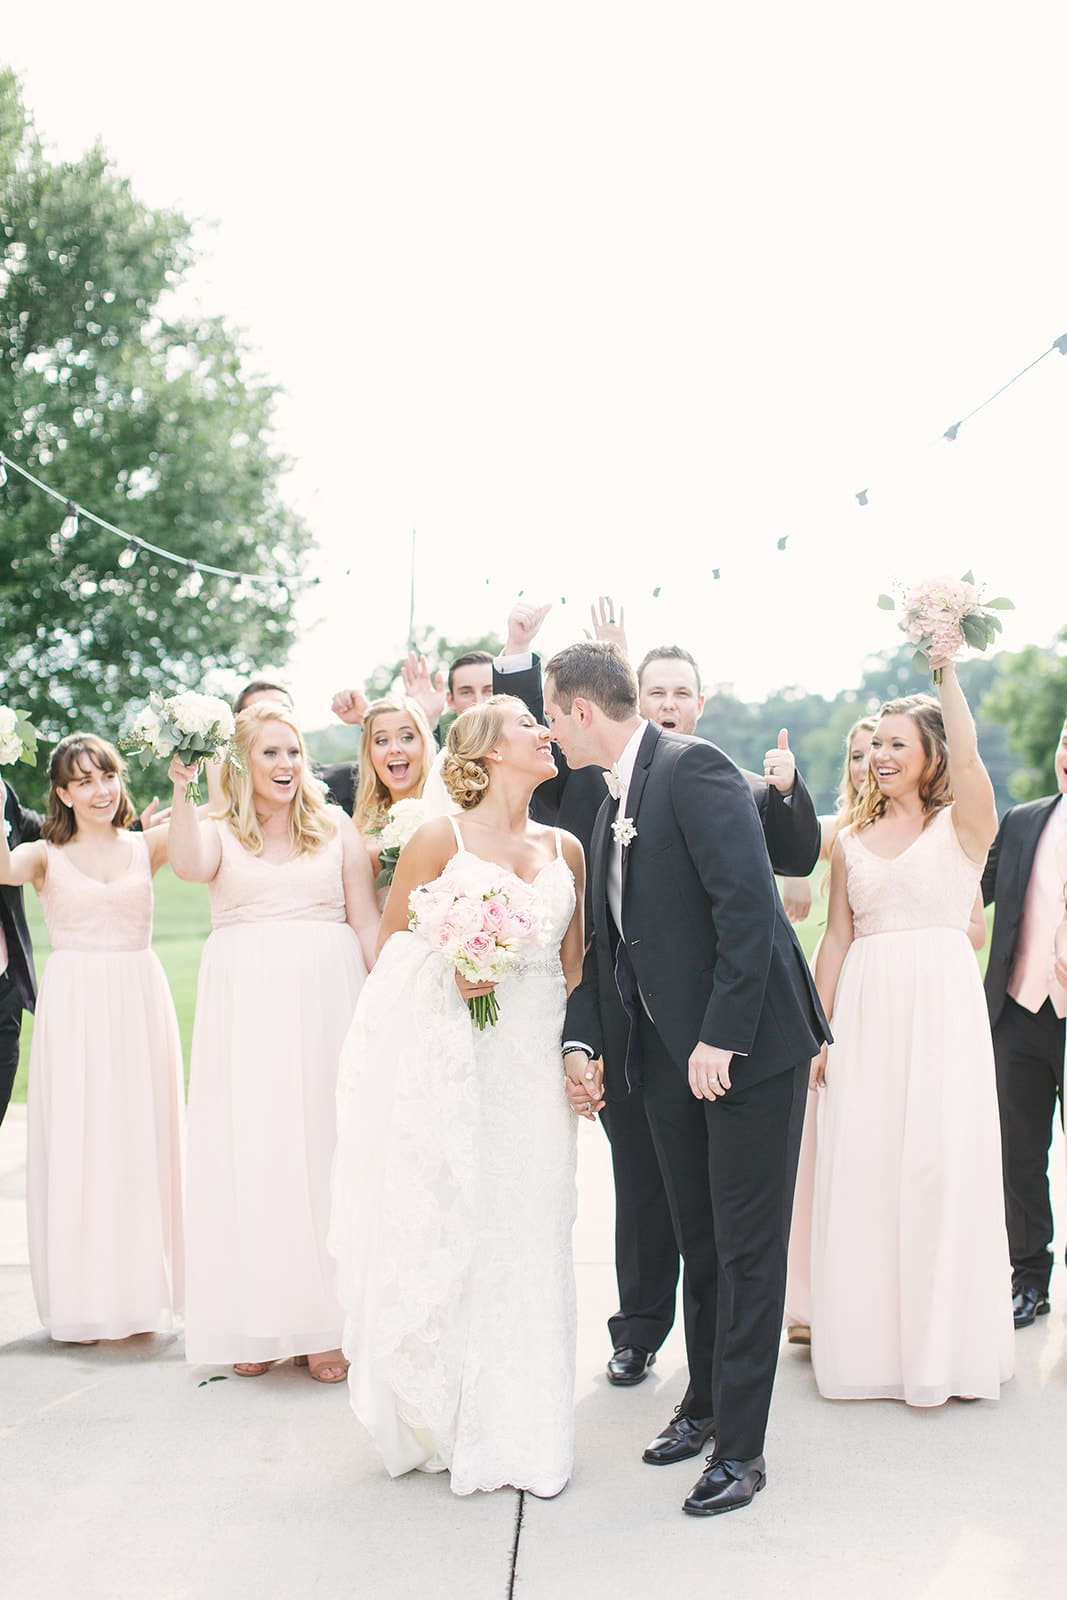 Bride and groom share a kiss as their bridal party looks on before their spring ceremony at The Diary Barn coordinated by Magnificent Moments Weddings